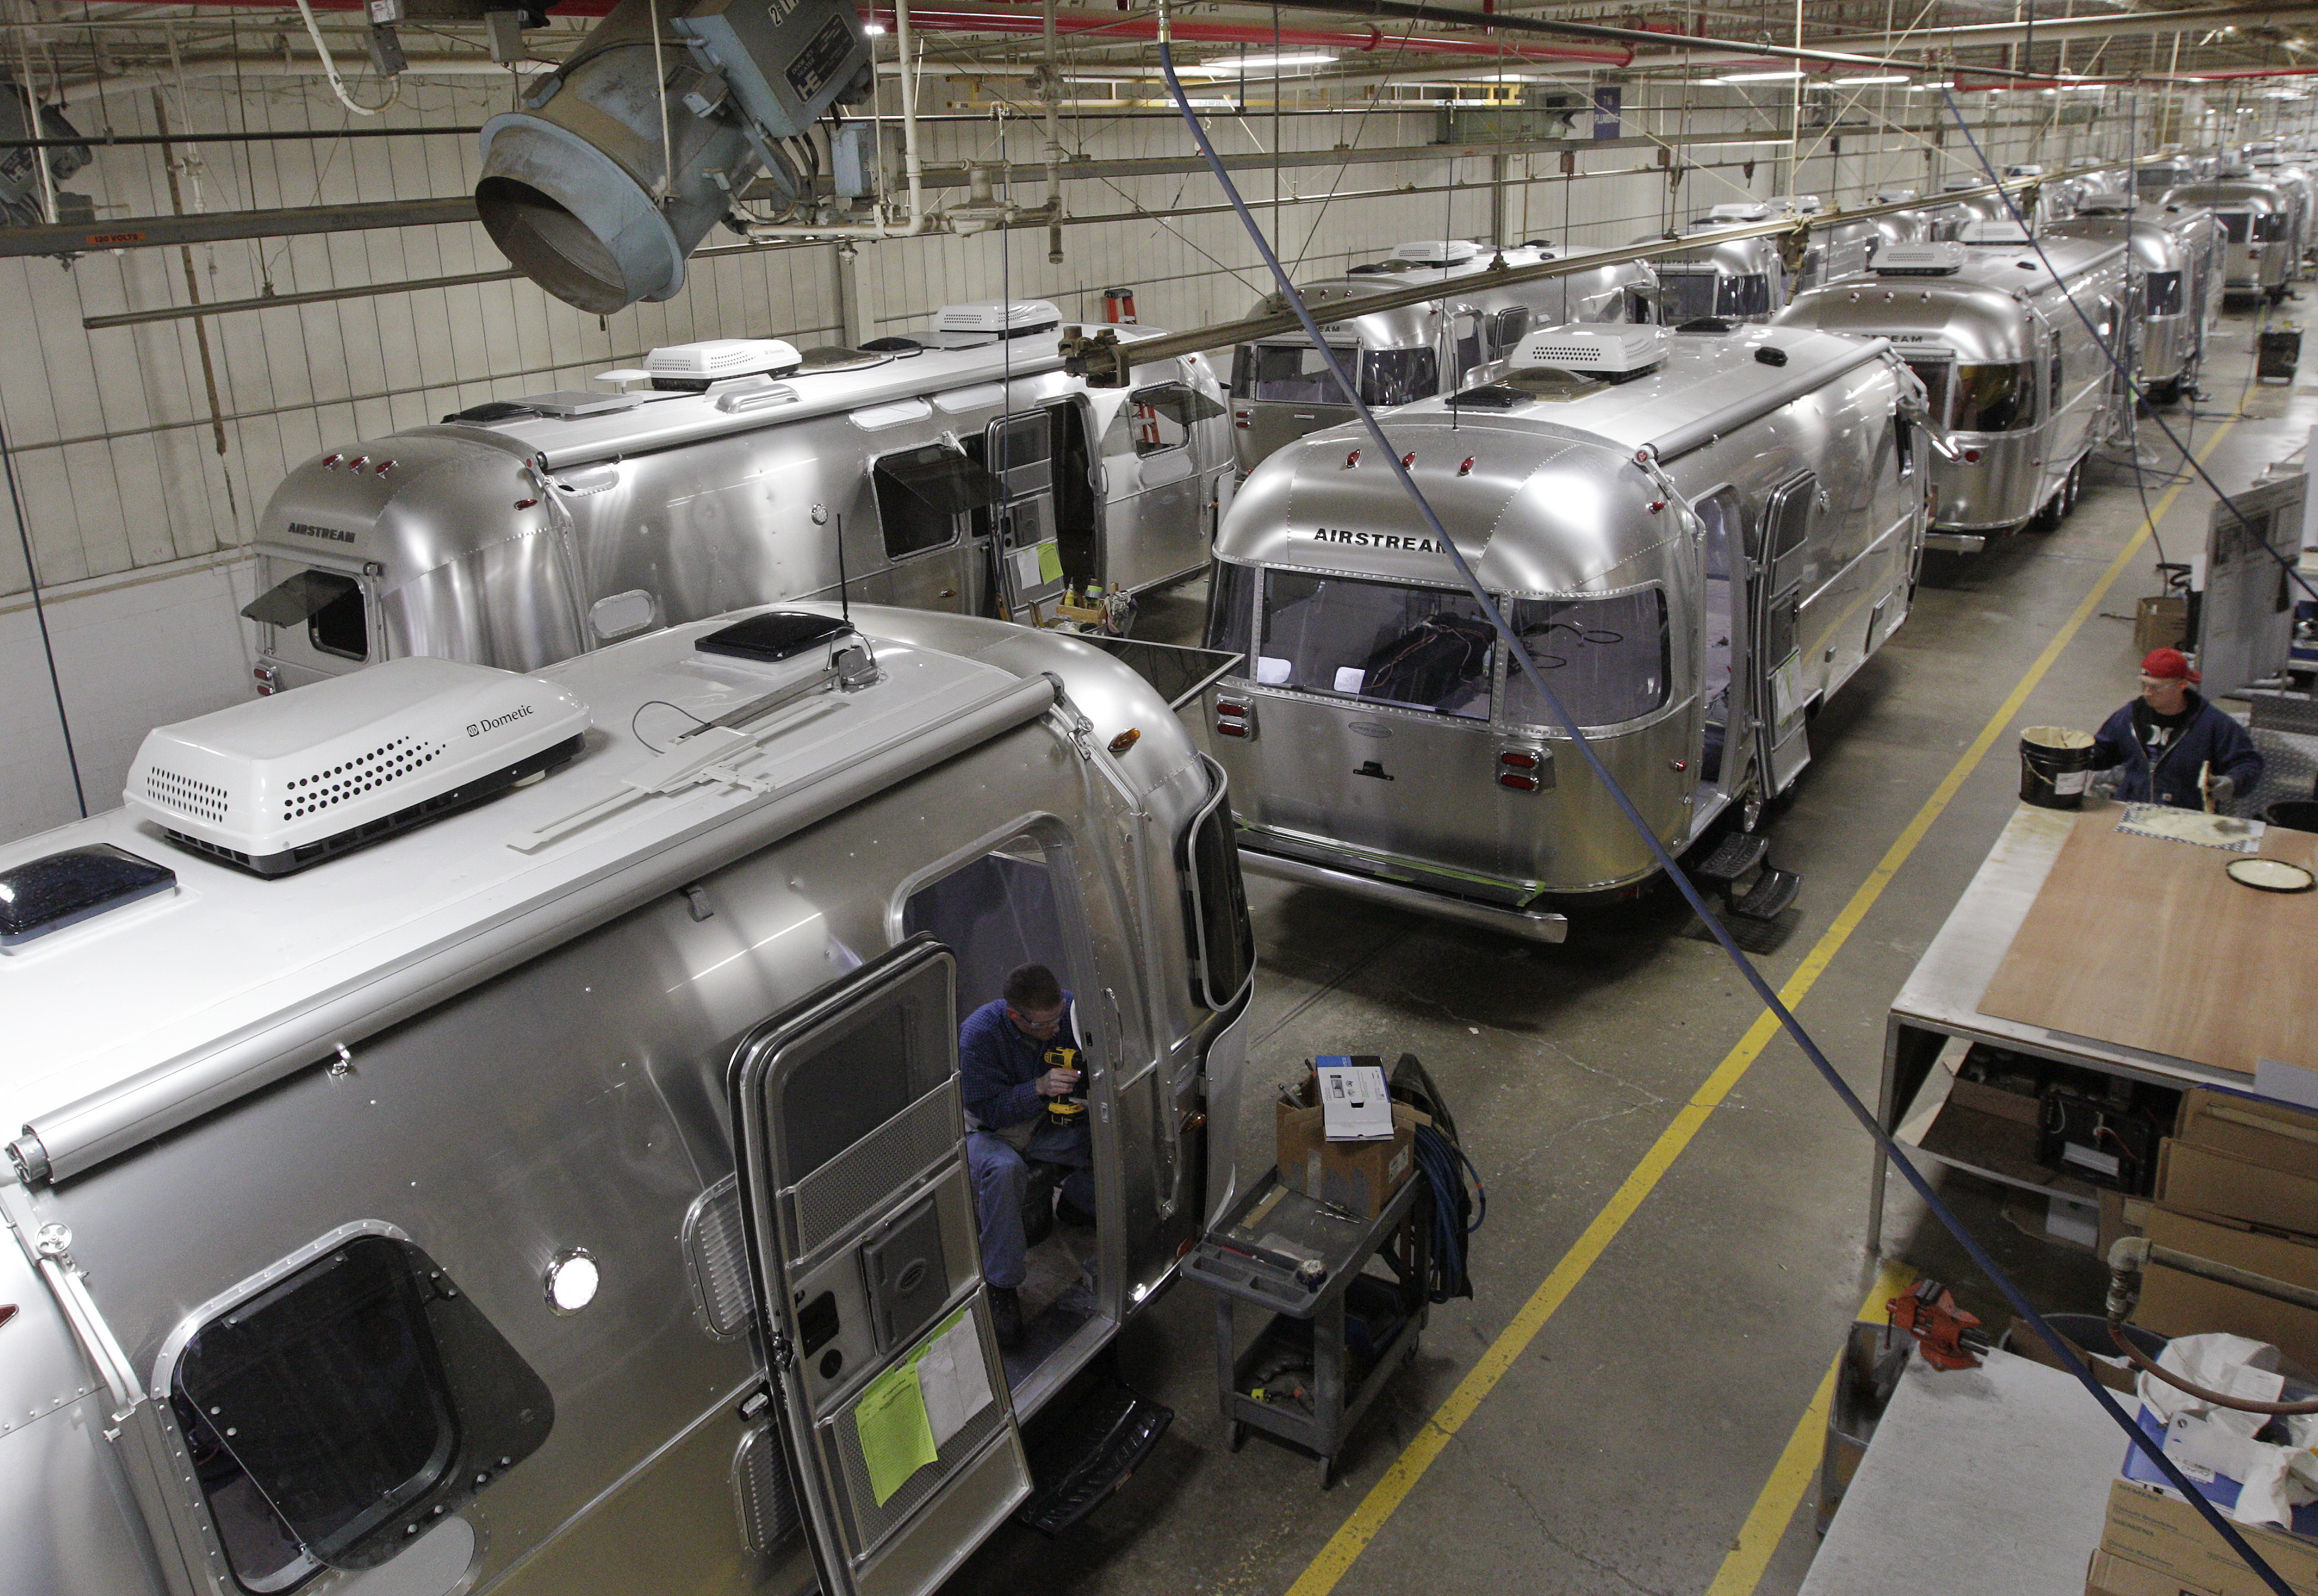 iconic airstream rides wave of demand the portland press herald maine sunday telegram. Black Bedroom Furniture Sets. Home Design Ideas